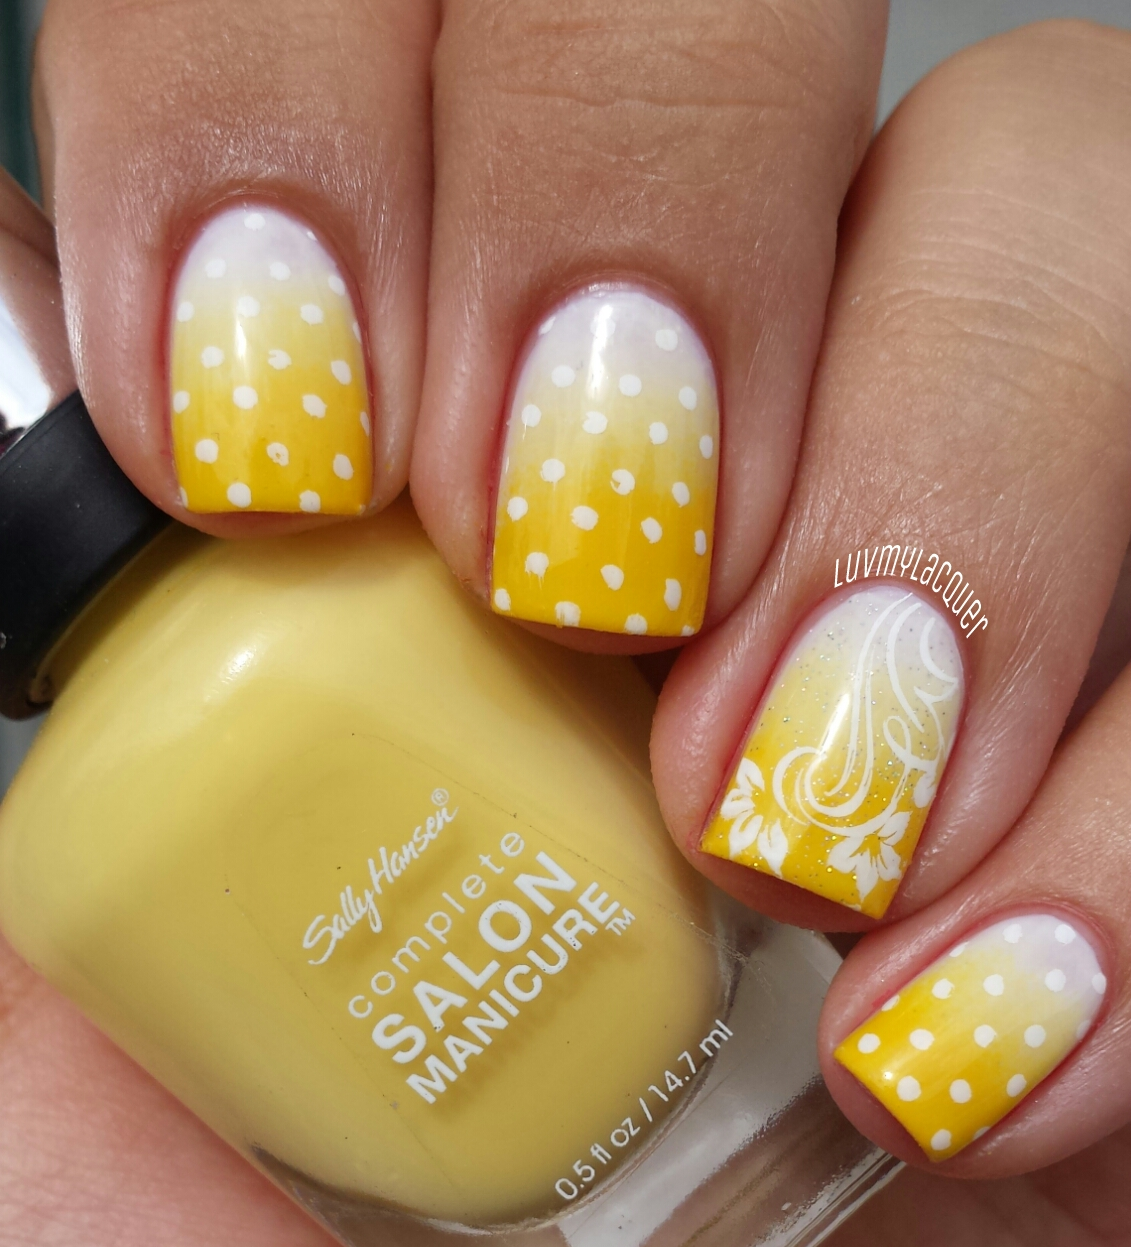 LuvMyLacquer: 31DC2013 Day 3 - Yellow Nails